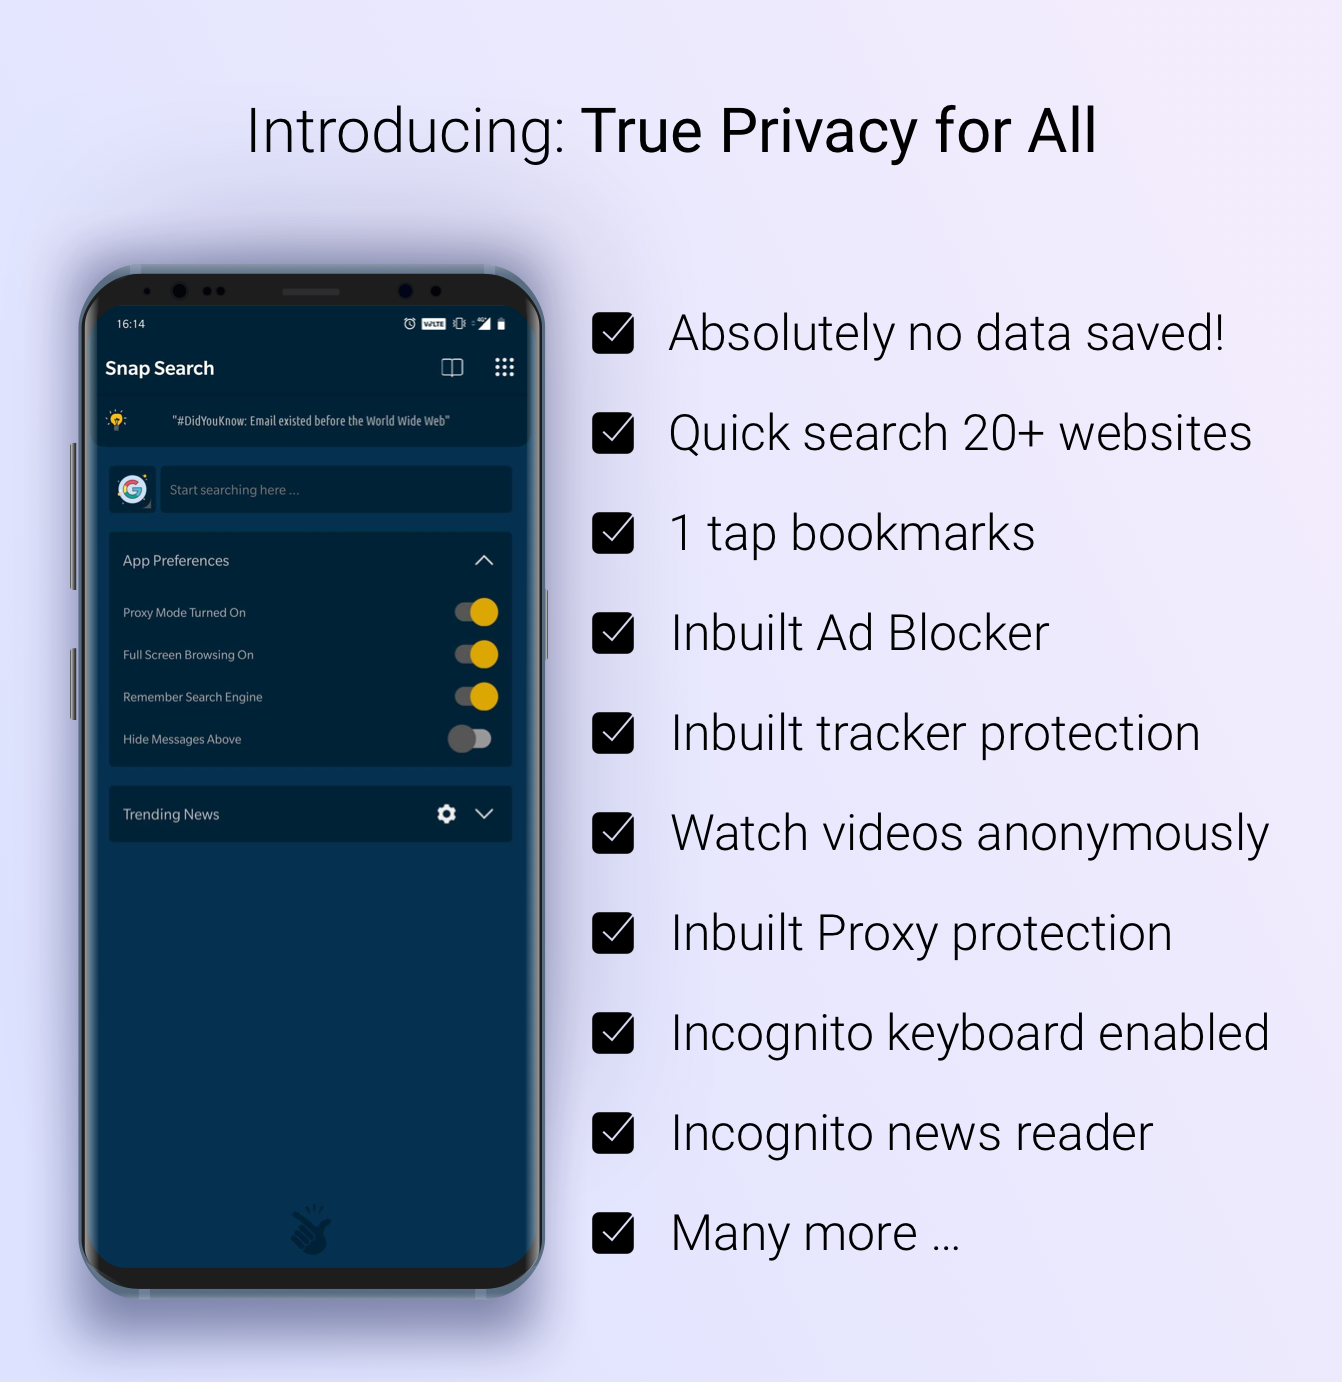 on-developing-and-launching-a-privacy-focused-app-as-a-solo-founder